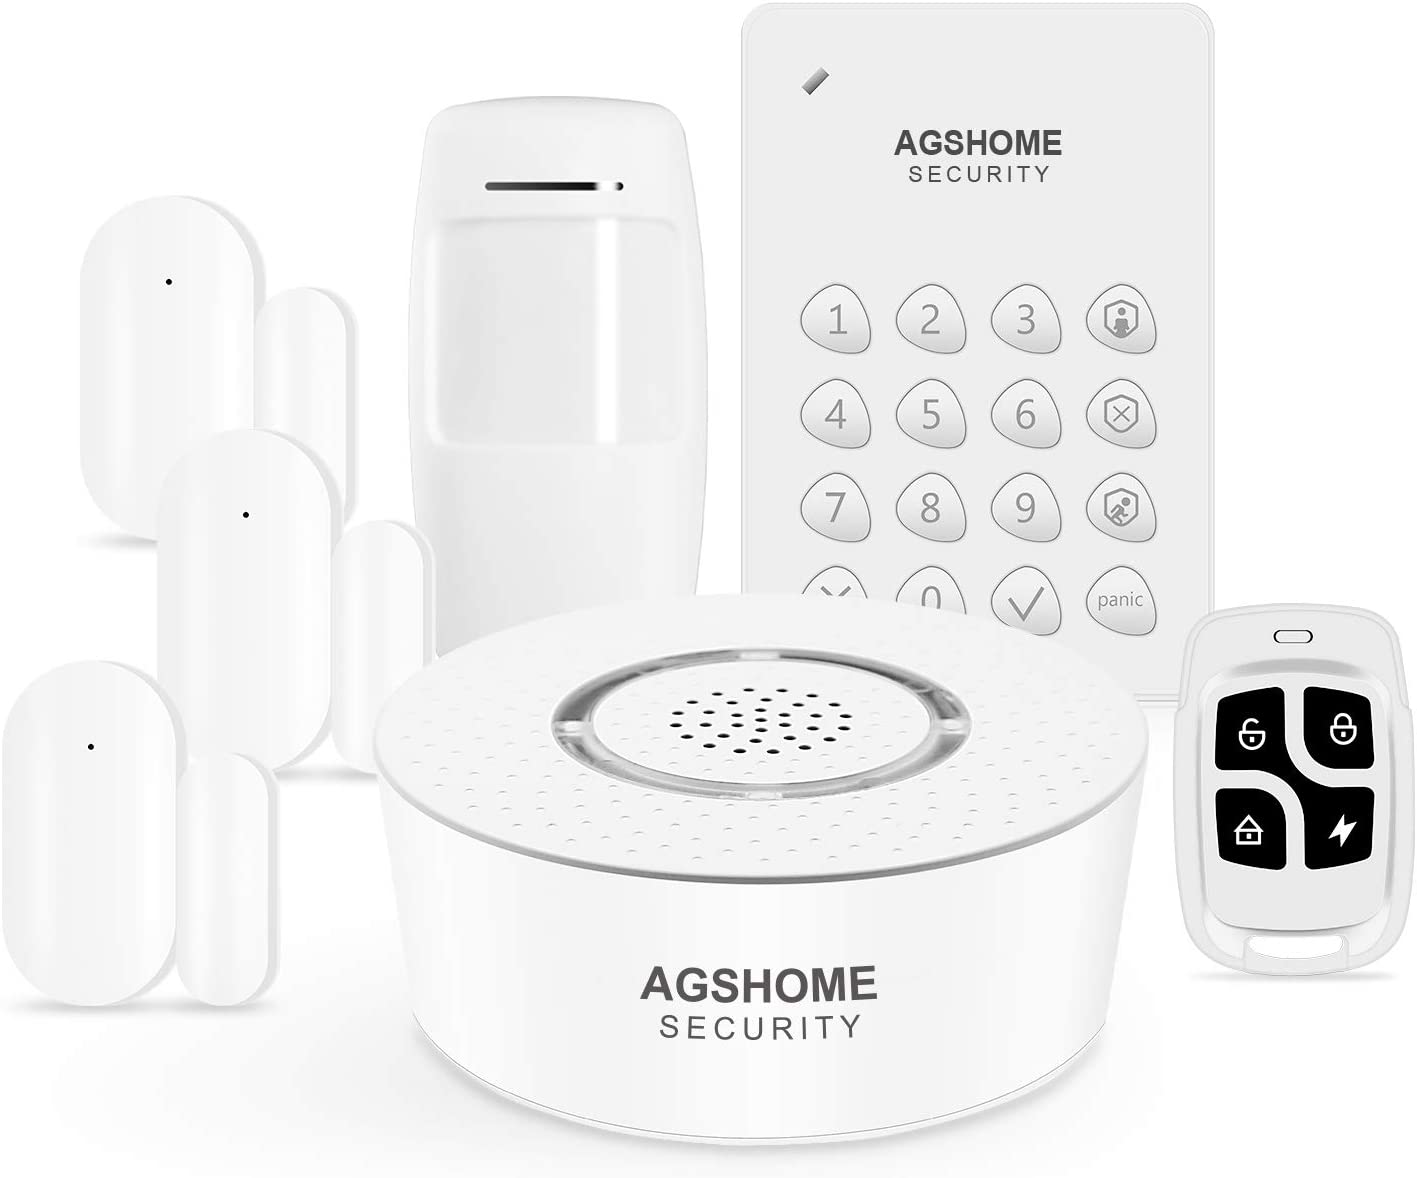 AGSHome Alarm, Wireless Smart Home Security System with Burglar and Phone APP Alert, 7-Piece kit (Siren, Keypad, Remote, Door Window & Motion Sensor), Work with Alexa, for House and Apartment